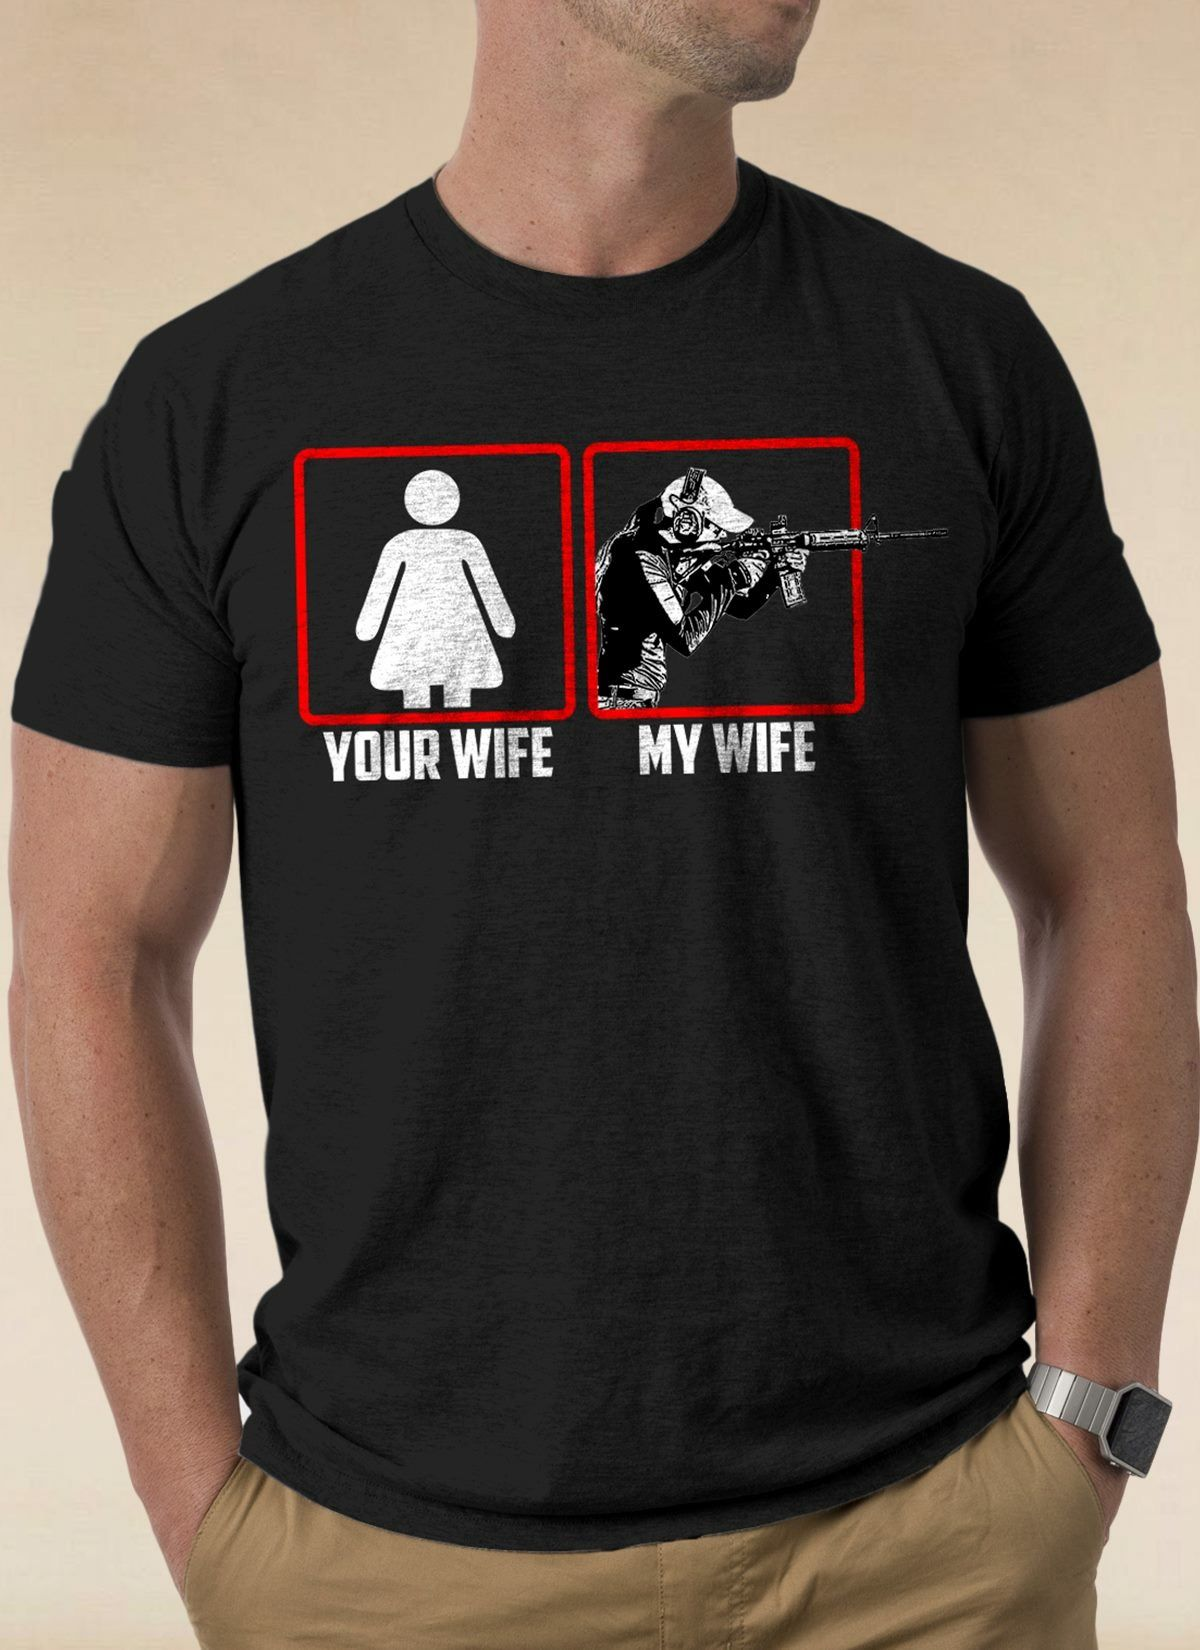 Cooks holsters iwb kydex holster review your wife my